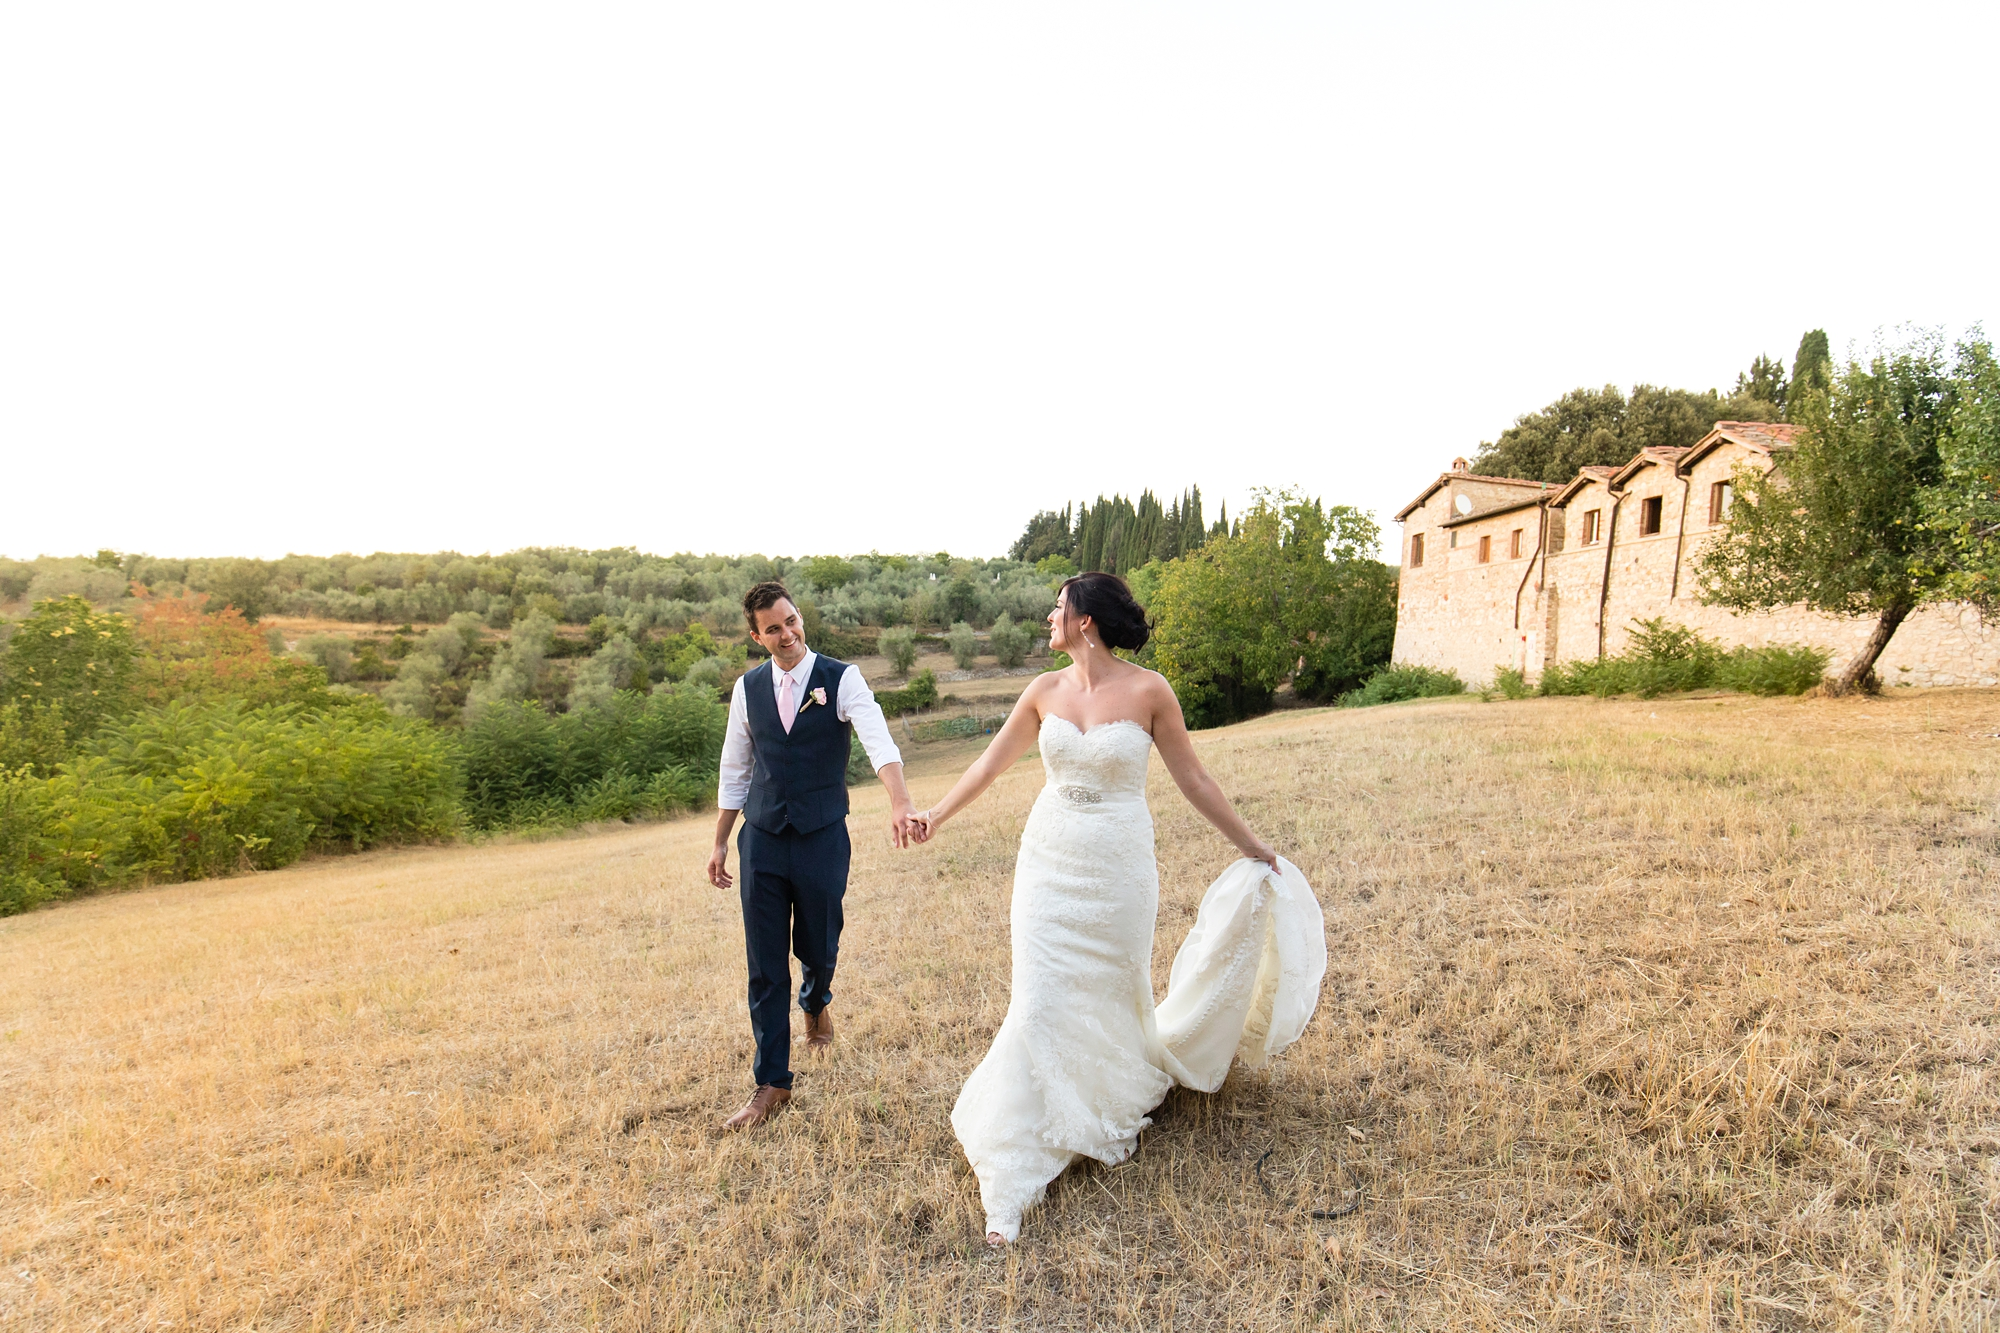 Villa Catignano Siena Wedding Photography bride and groom walk through fields in Italy